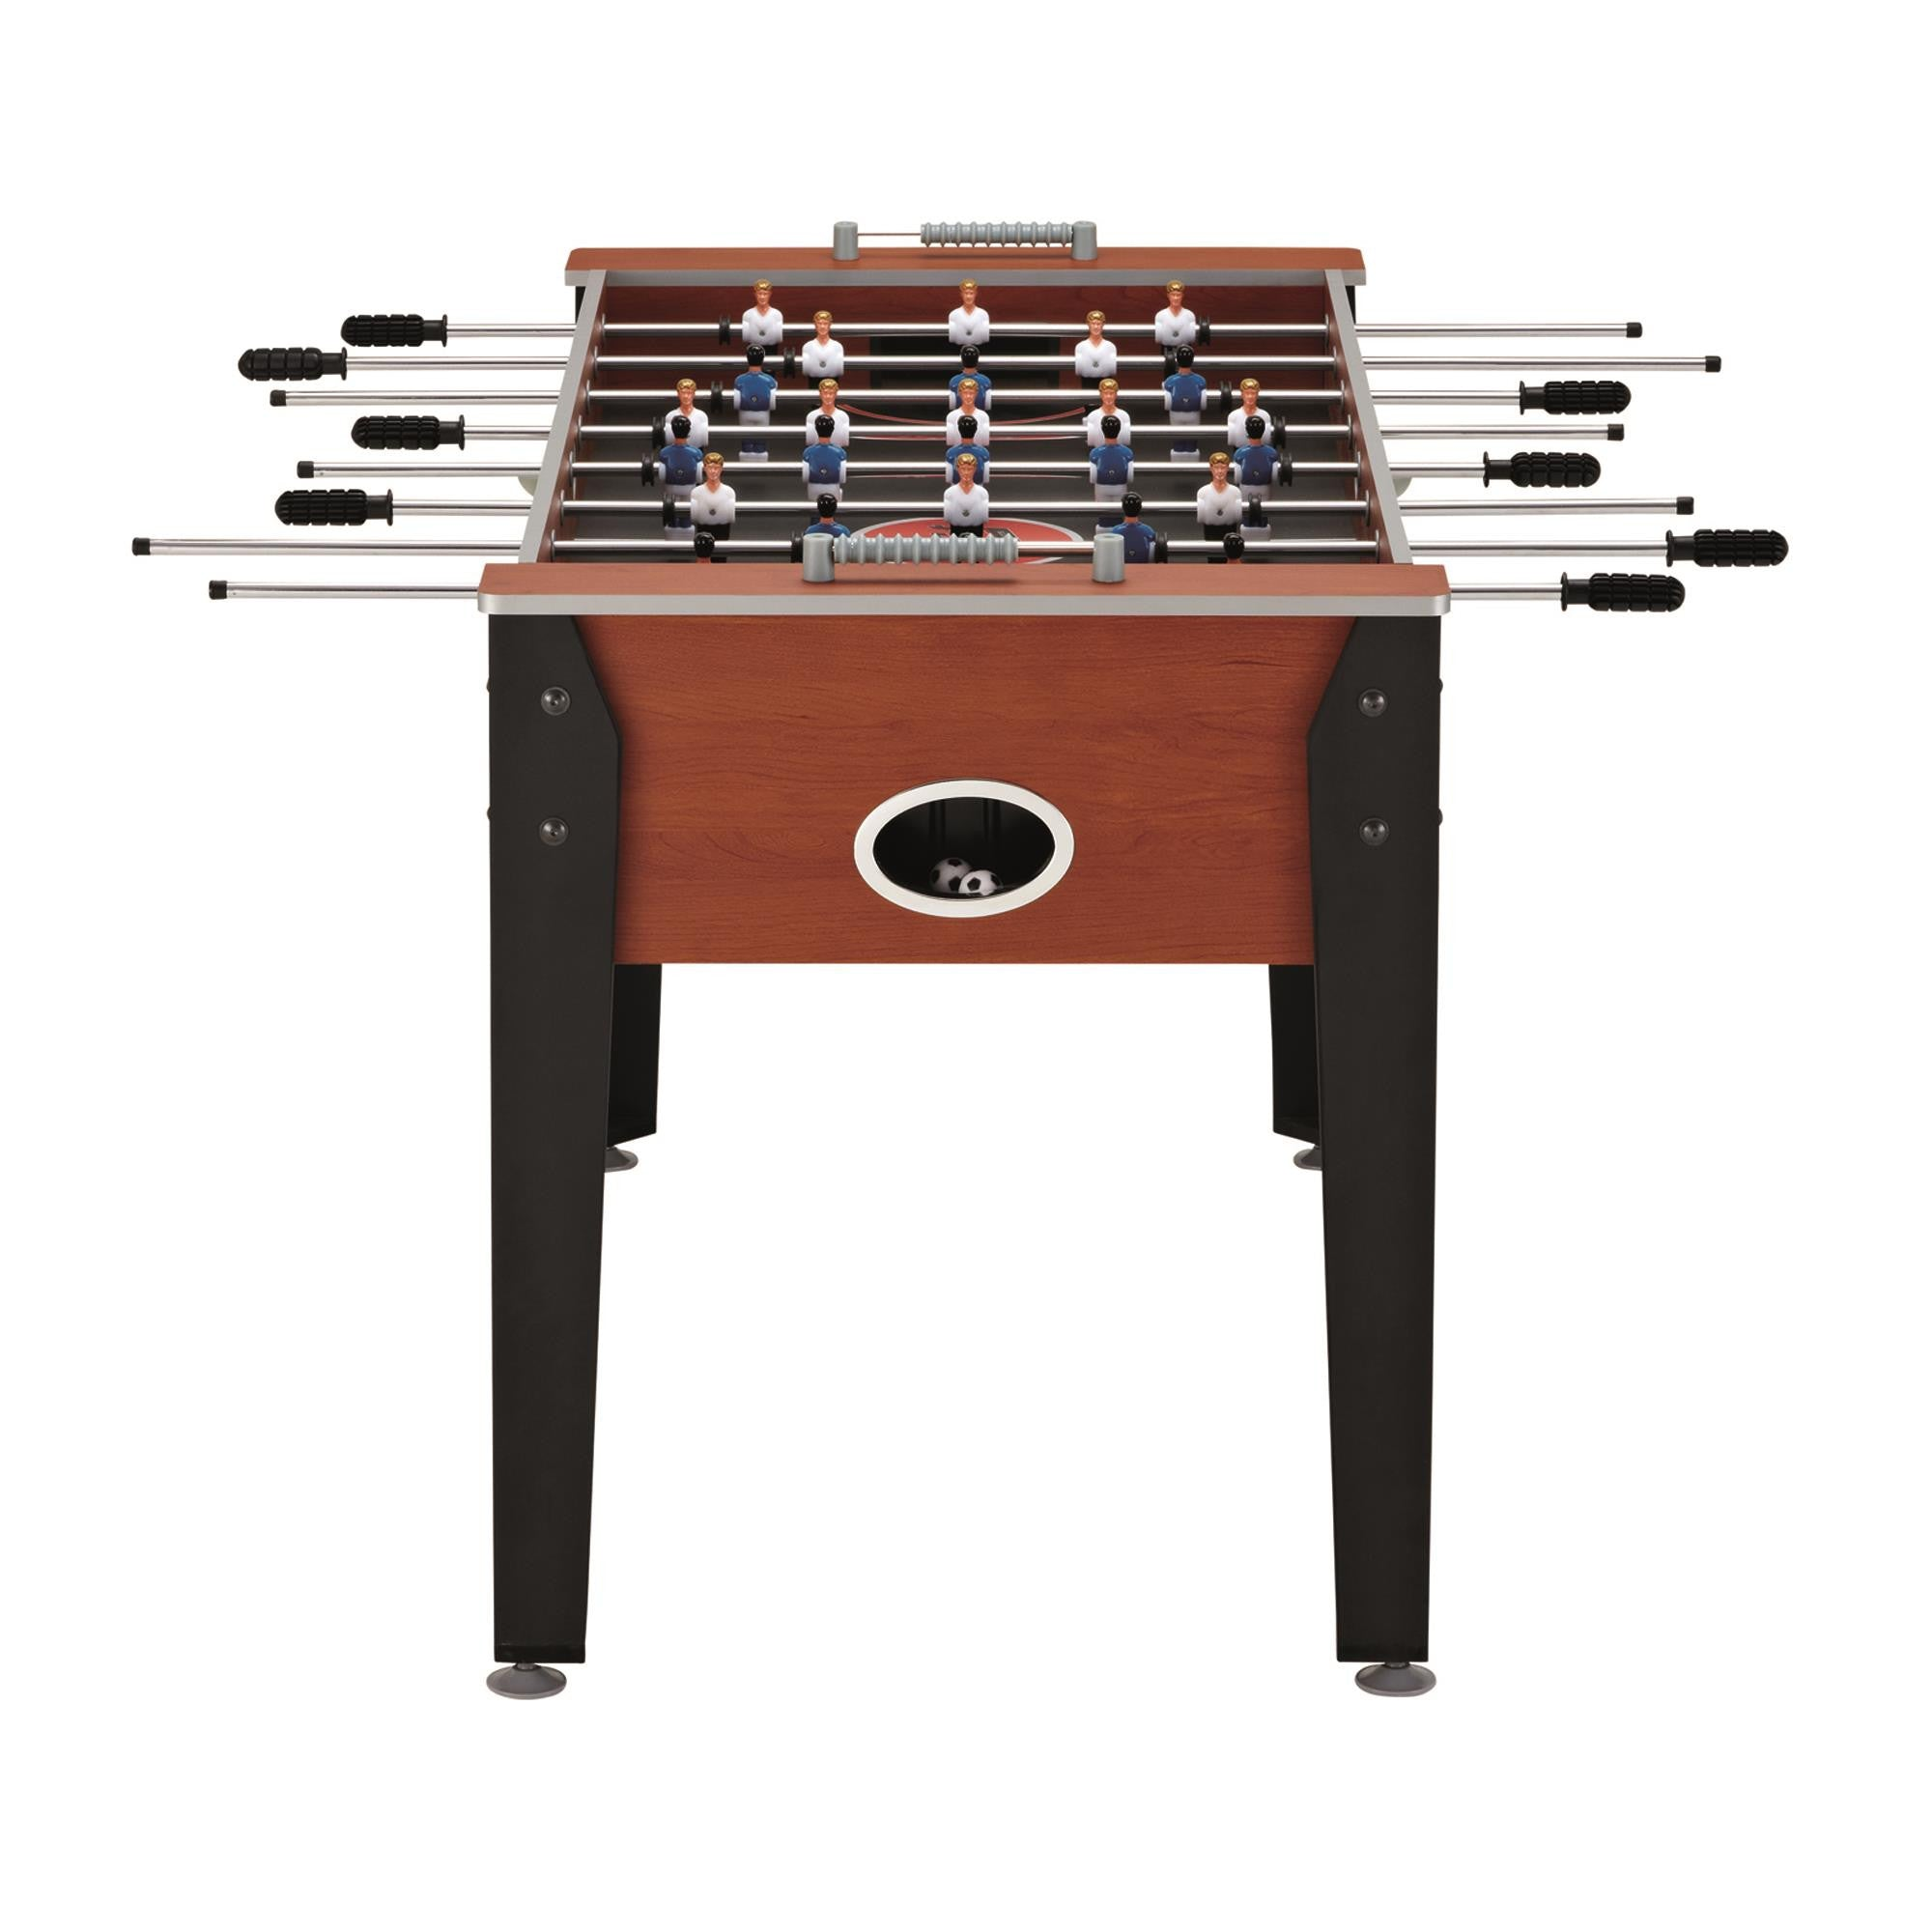 ... Fat Cat Manchester 54 Inch Foosball Table 64